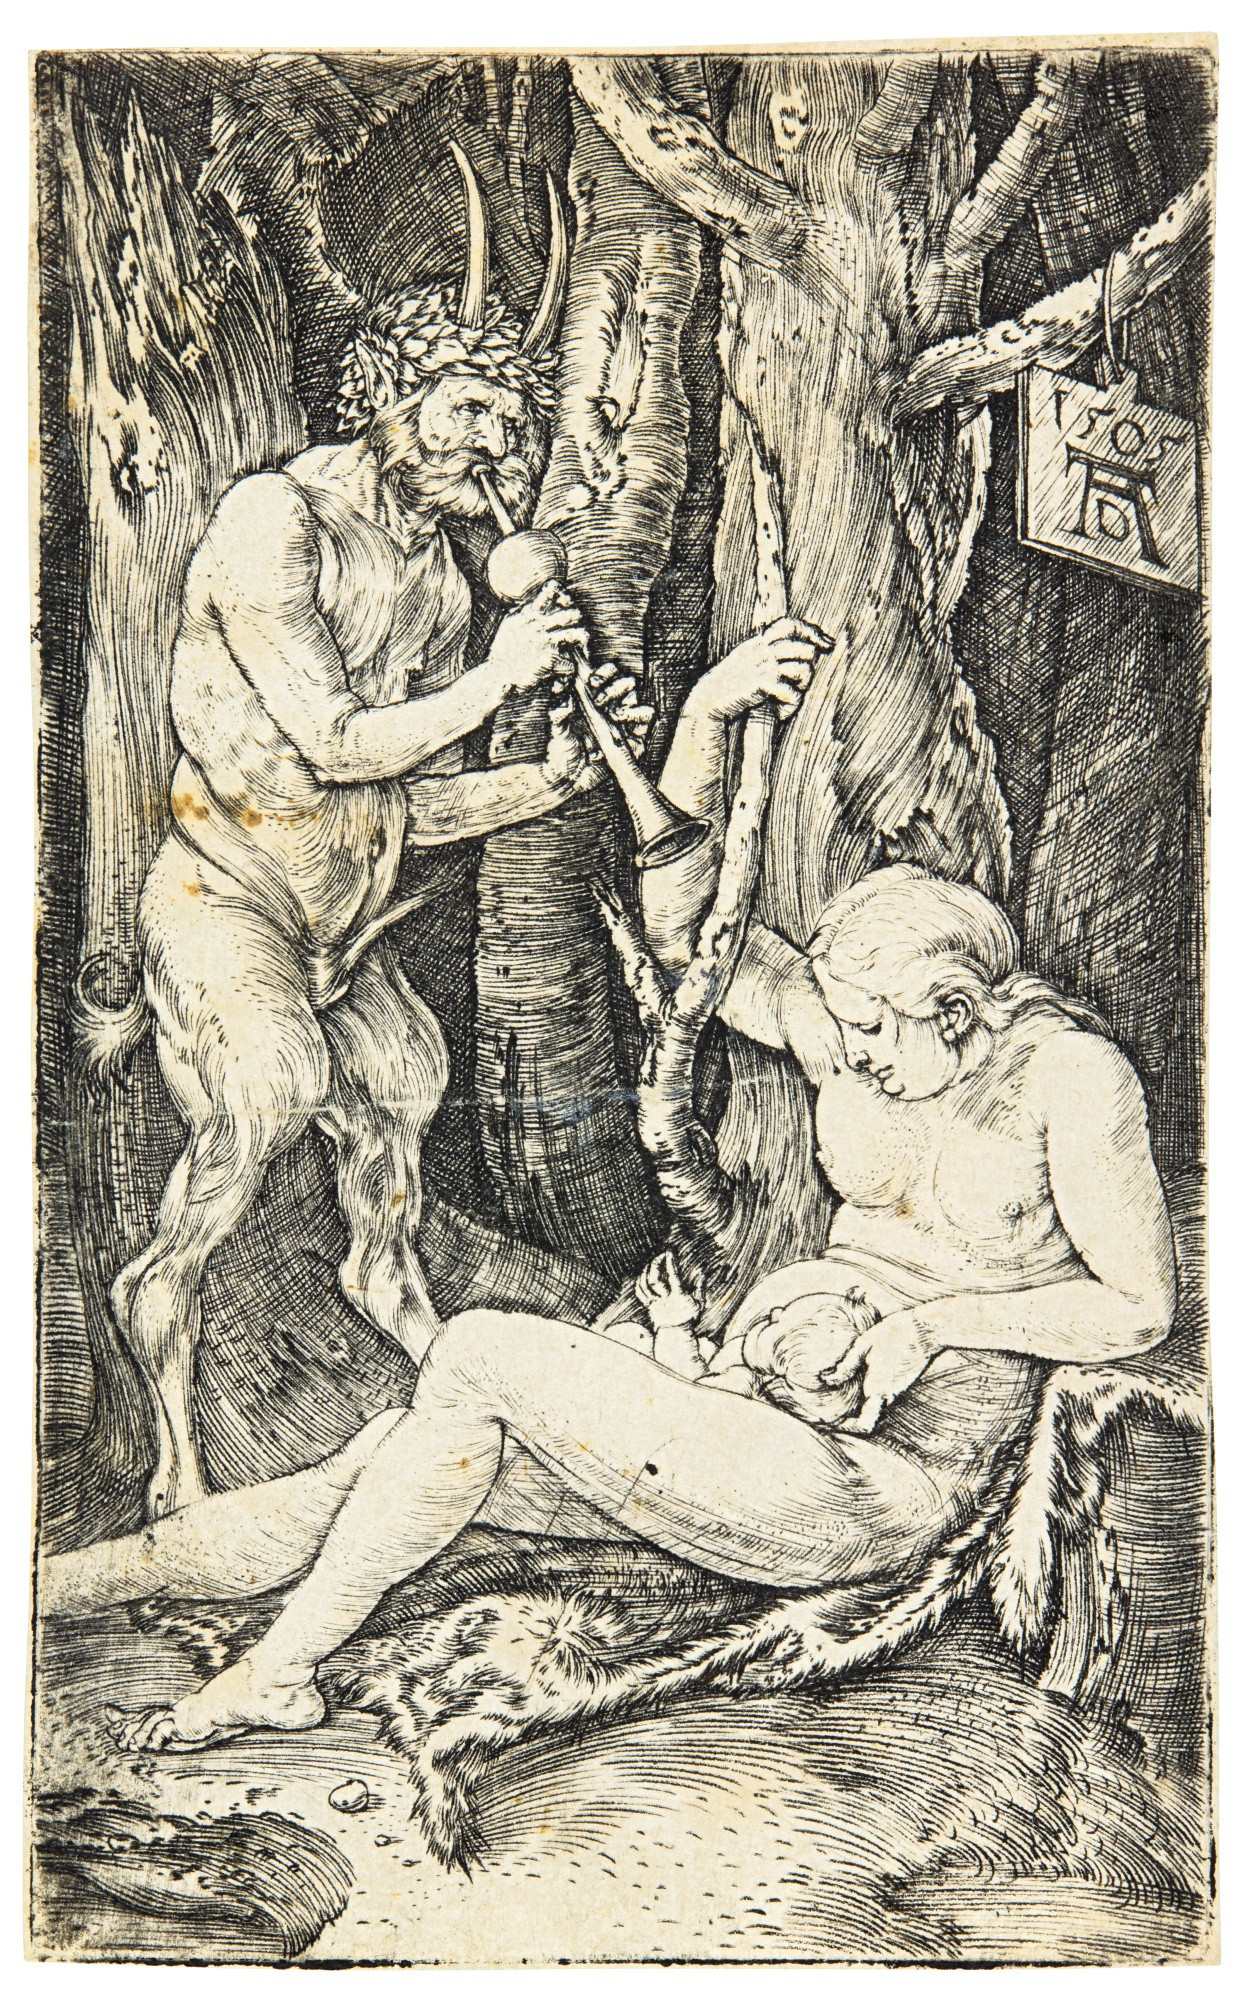 ALBRECHT DÜRER   THE SATYR'S FAMILY; ST. PHILIP; AND FIVE SOLDIERS AND A TURK ON HORSEBACK (B. 69, 46, 88; M., HOLL. 65, 48, 81)